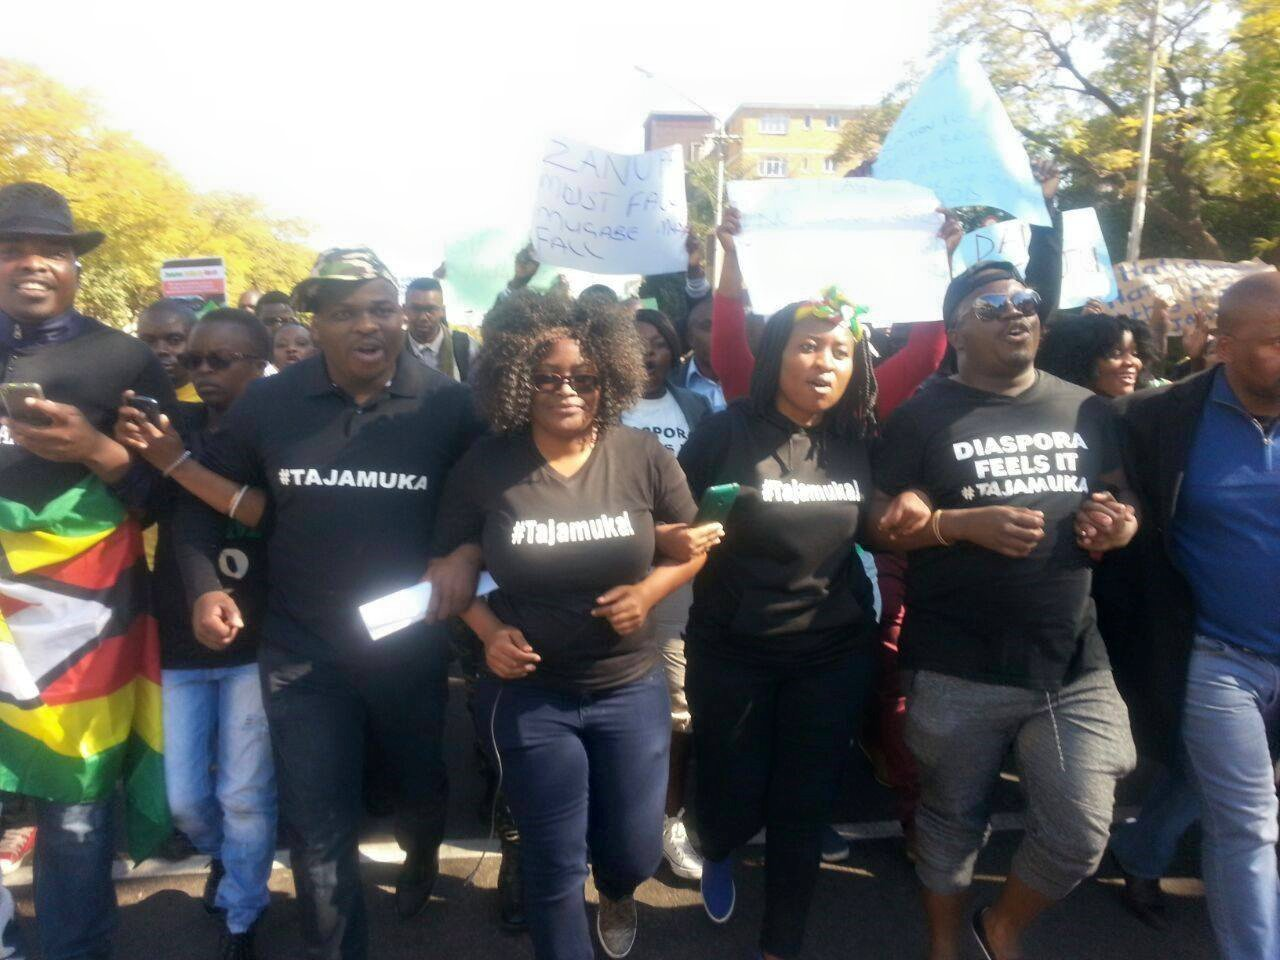 zimbabweans primarily based in south africa on wednesday took to the streets and marched to the zimbabwean embassy in south africa to name upon the federal